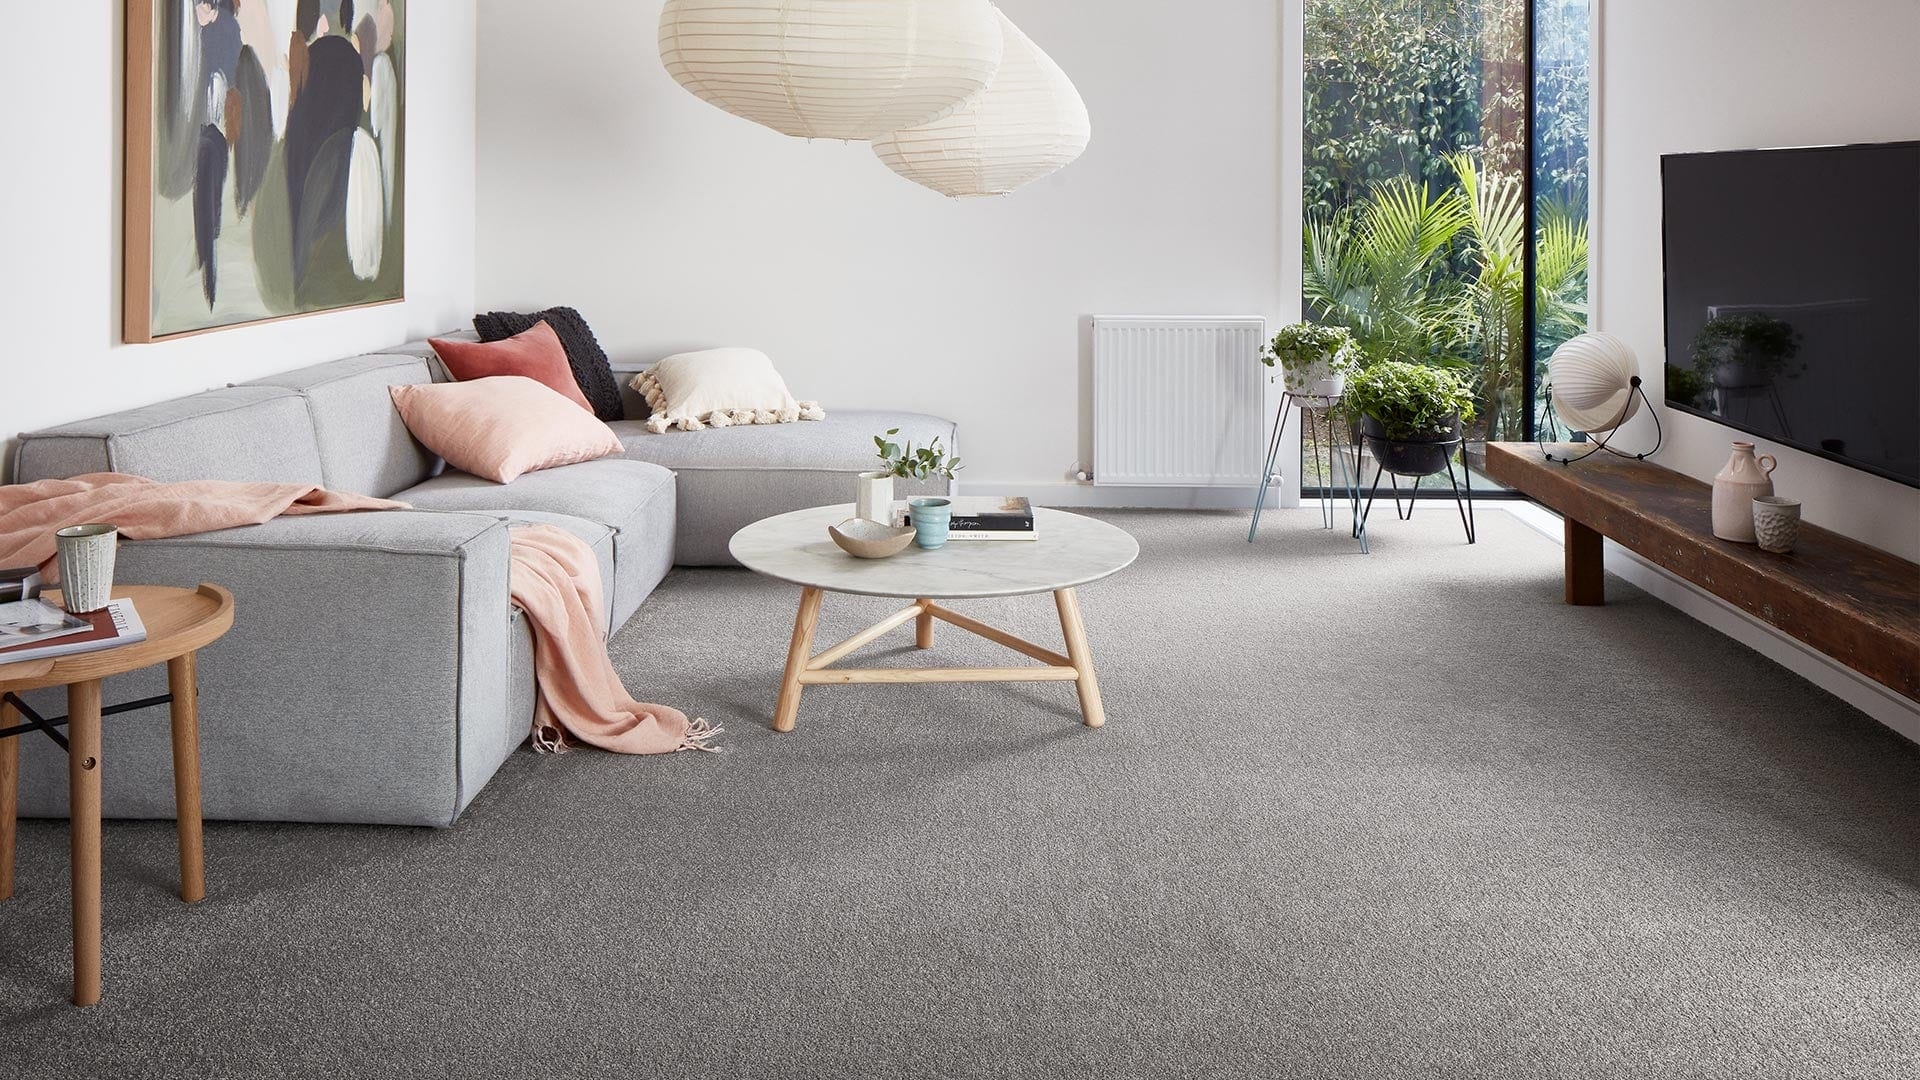 godfrey hirst carpet in living room with grey solution dyed nylon carpet